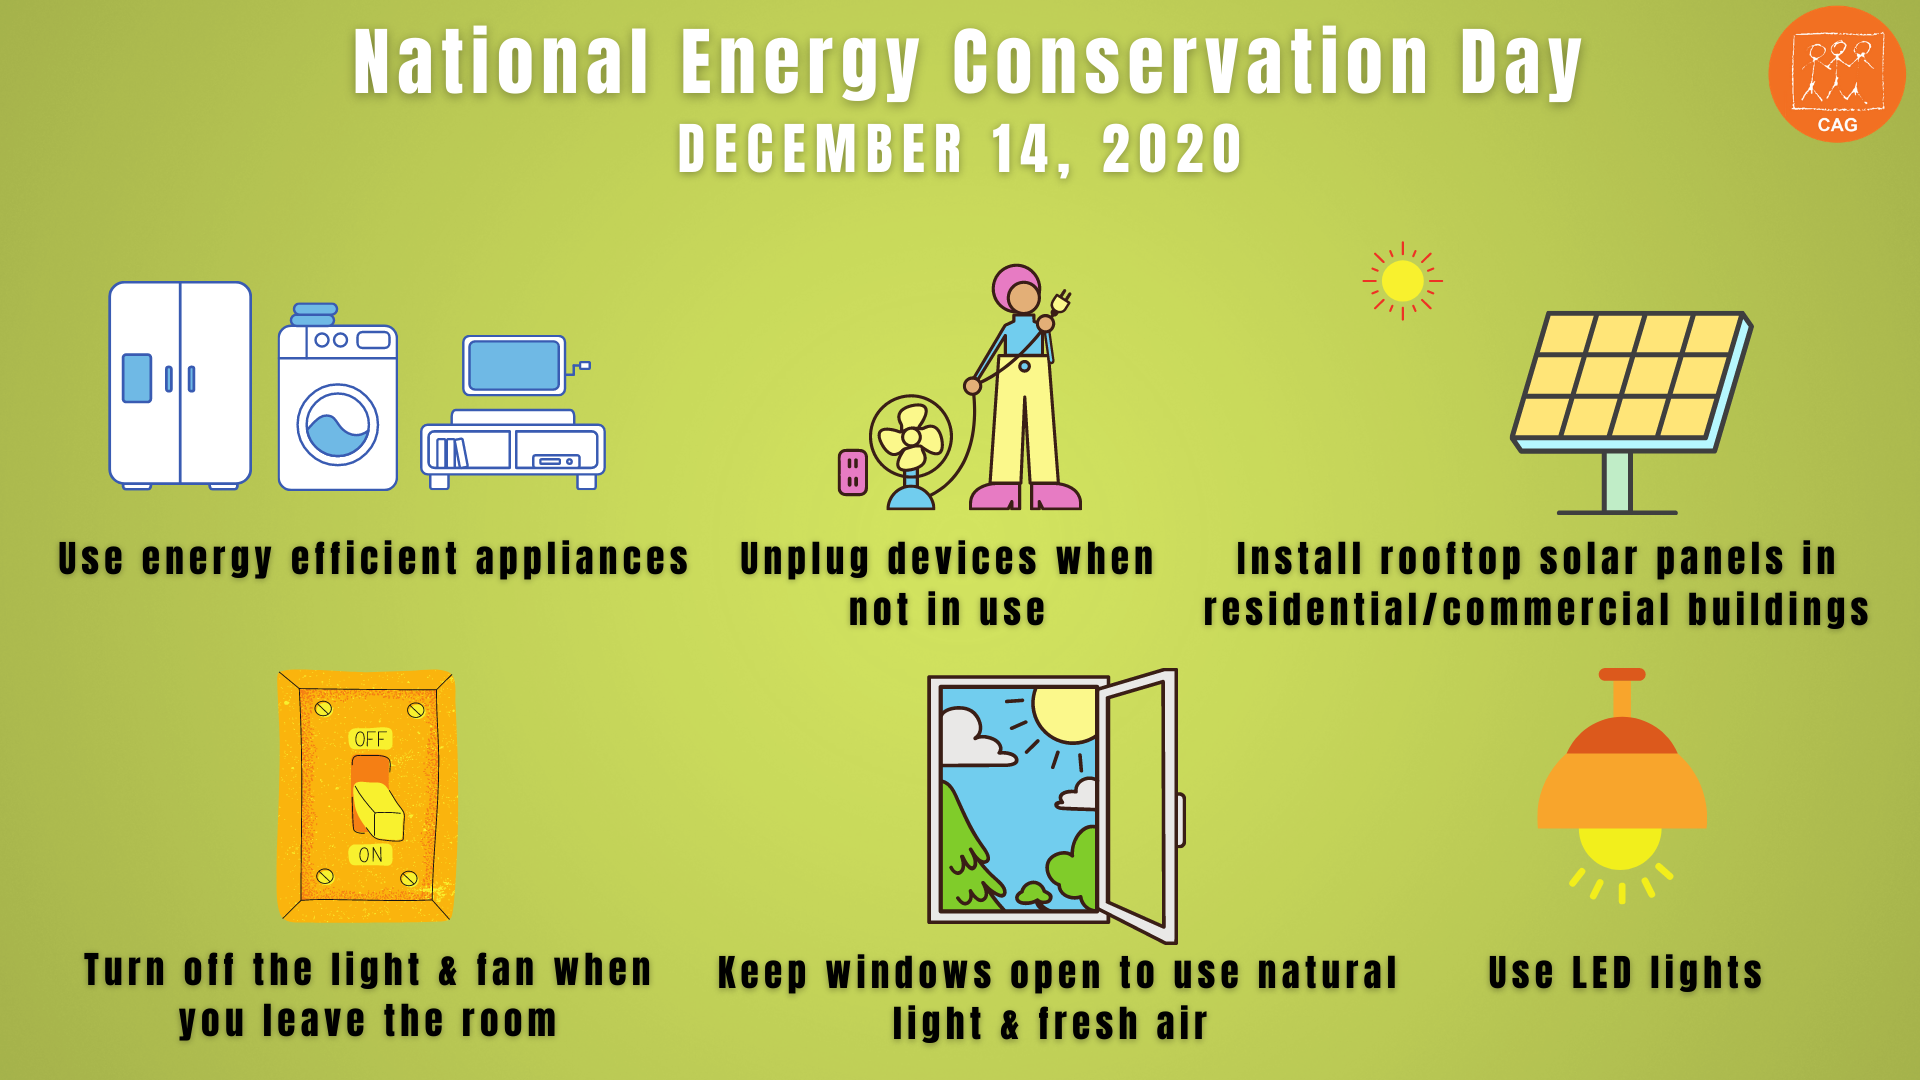 Nat Energy Cons Day 2020 1